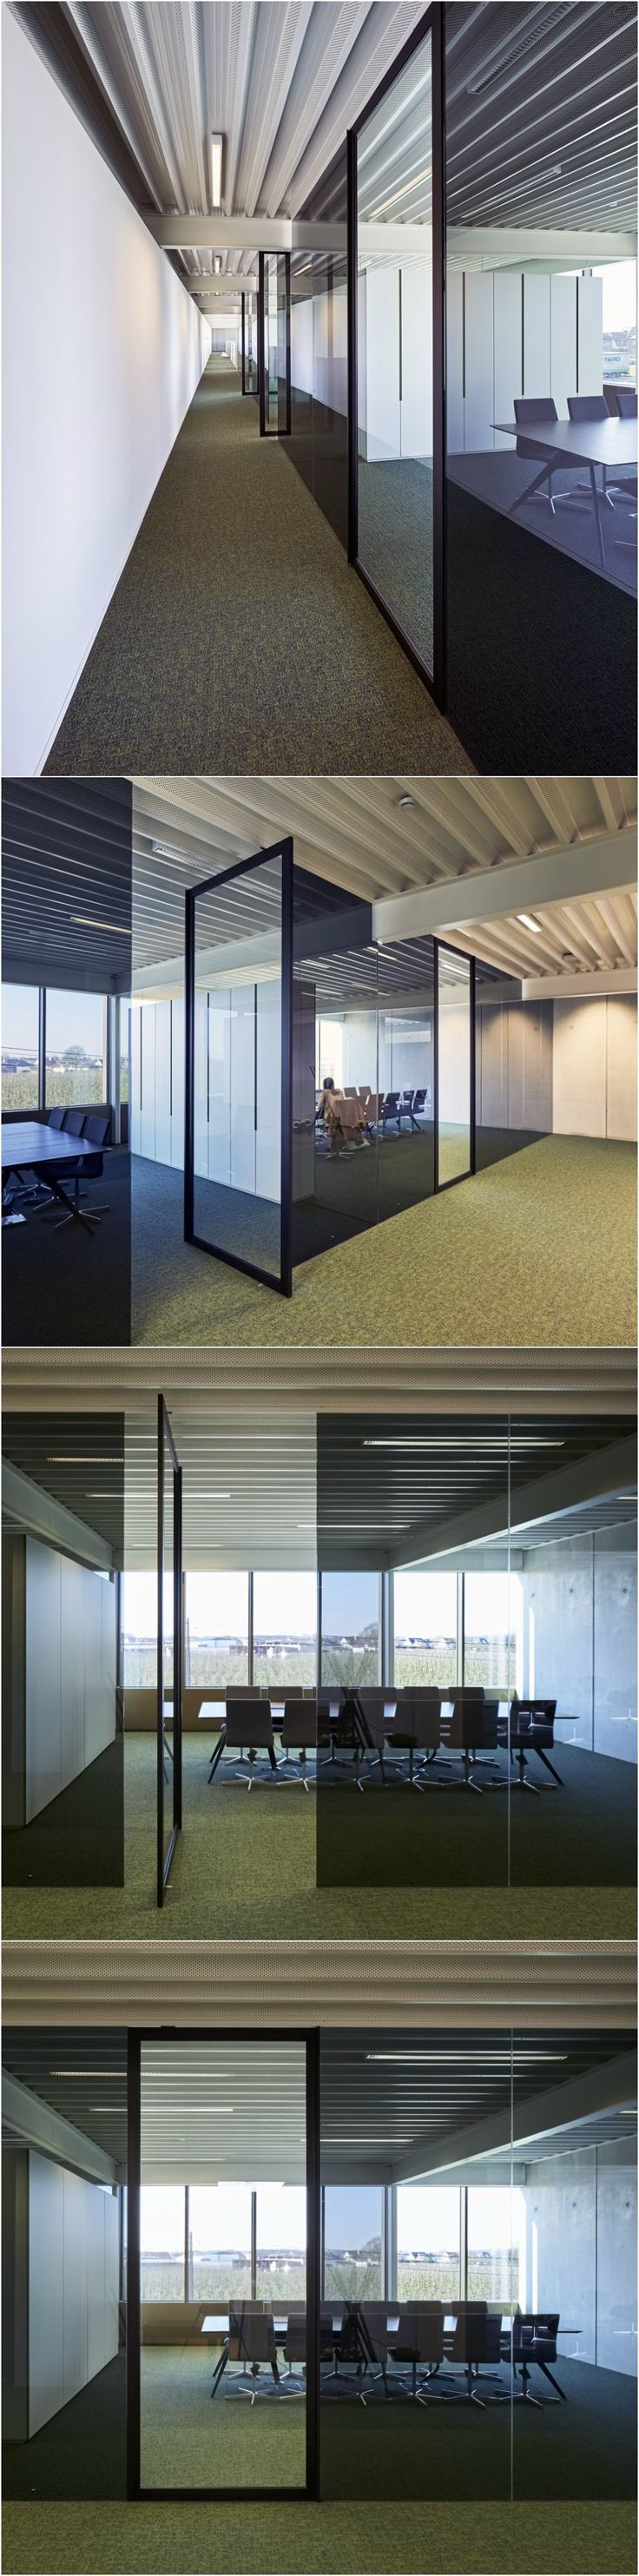 Glass office partitions in Dark Grey glass with glass pivot doors as entry doors to the various offices and meeting rooms. Portapivot's 6530 system is installed in the finished opening, without any built-in parts to either floor or ceiling.